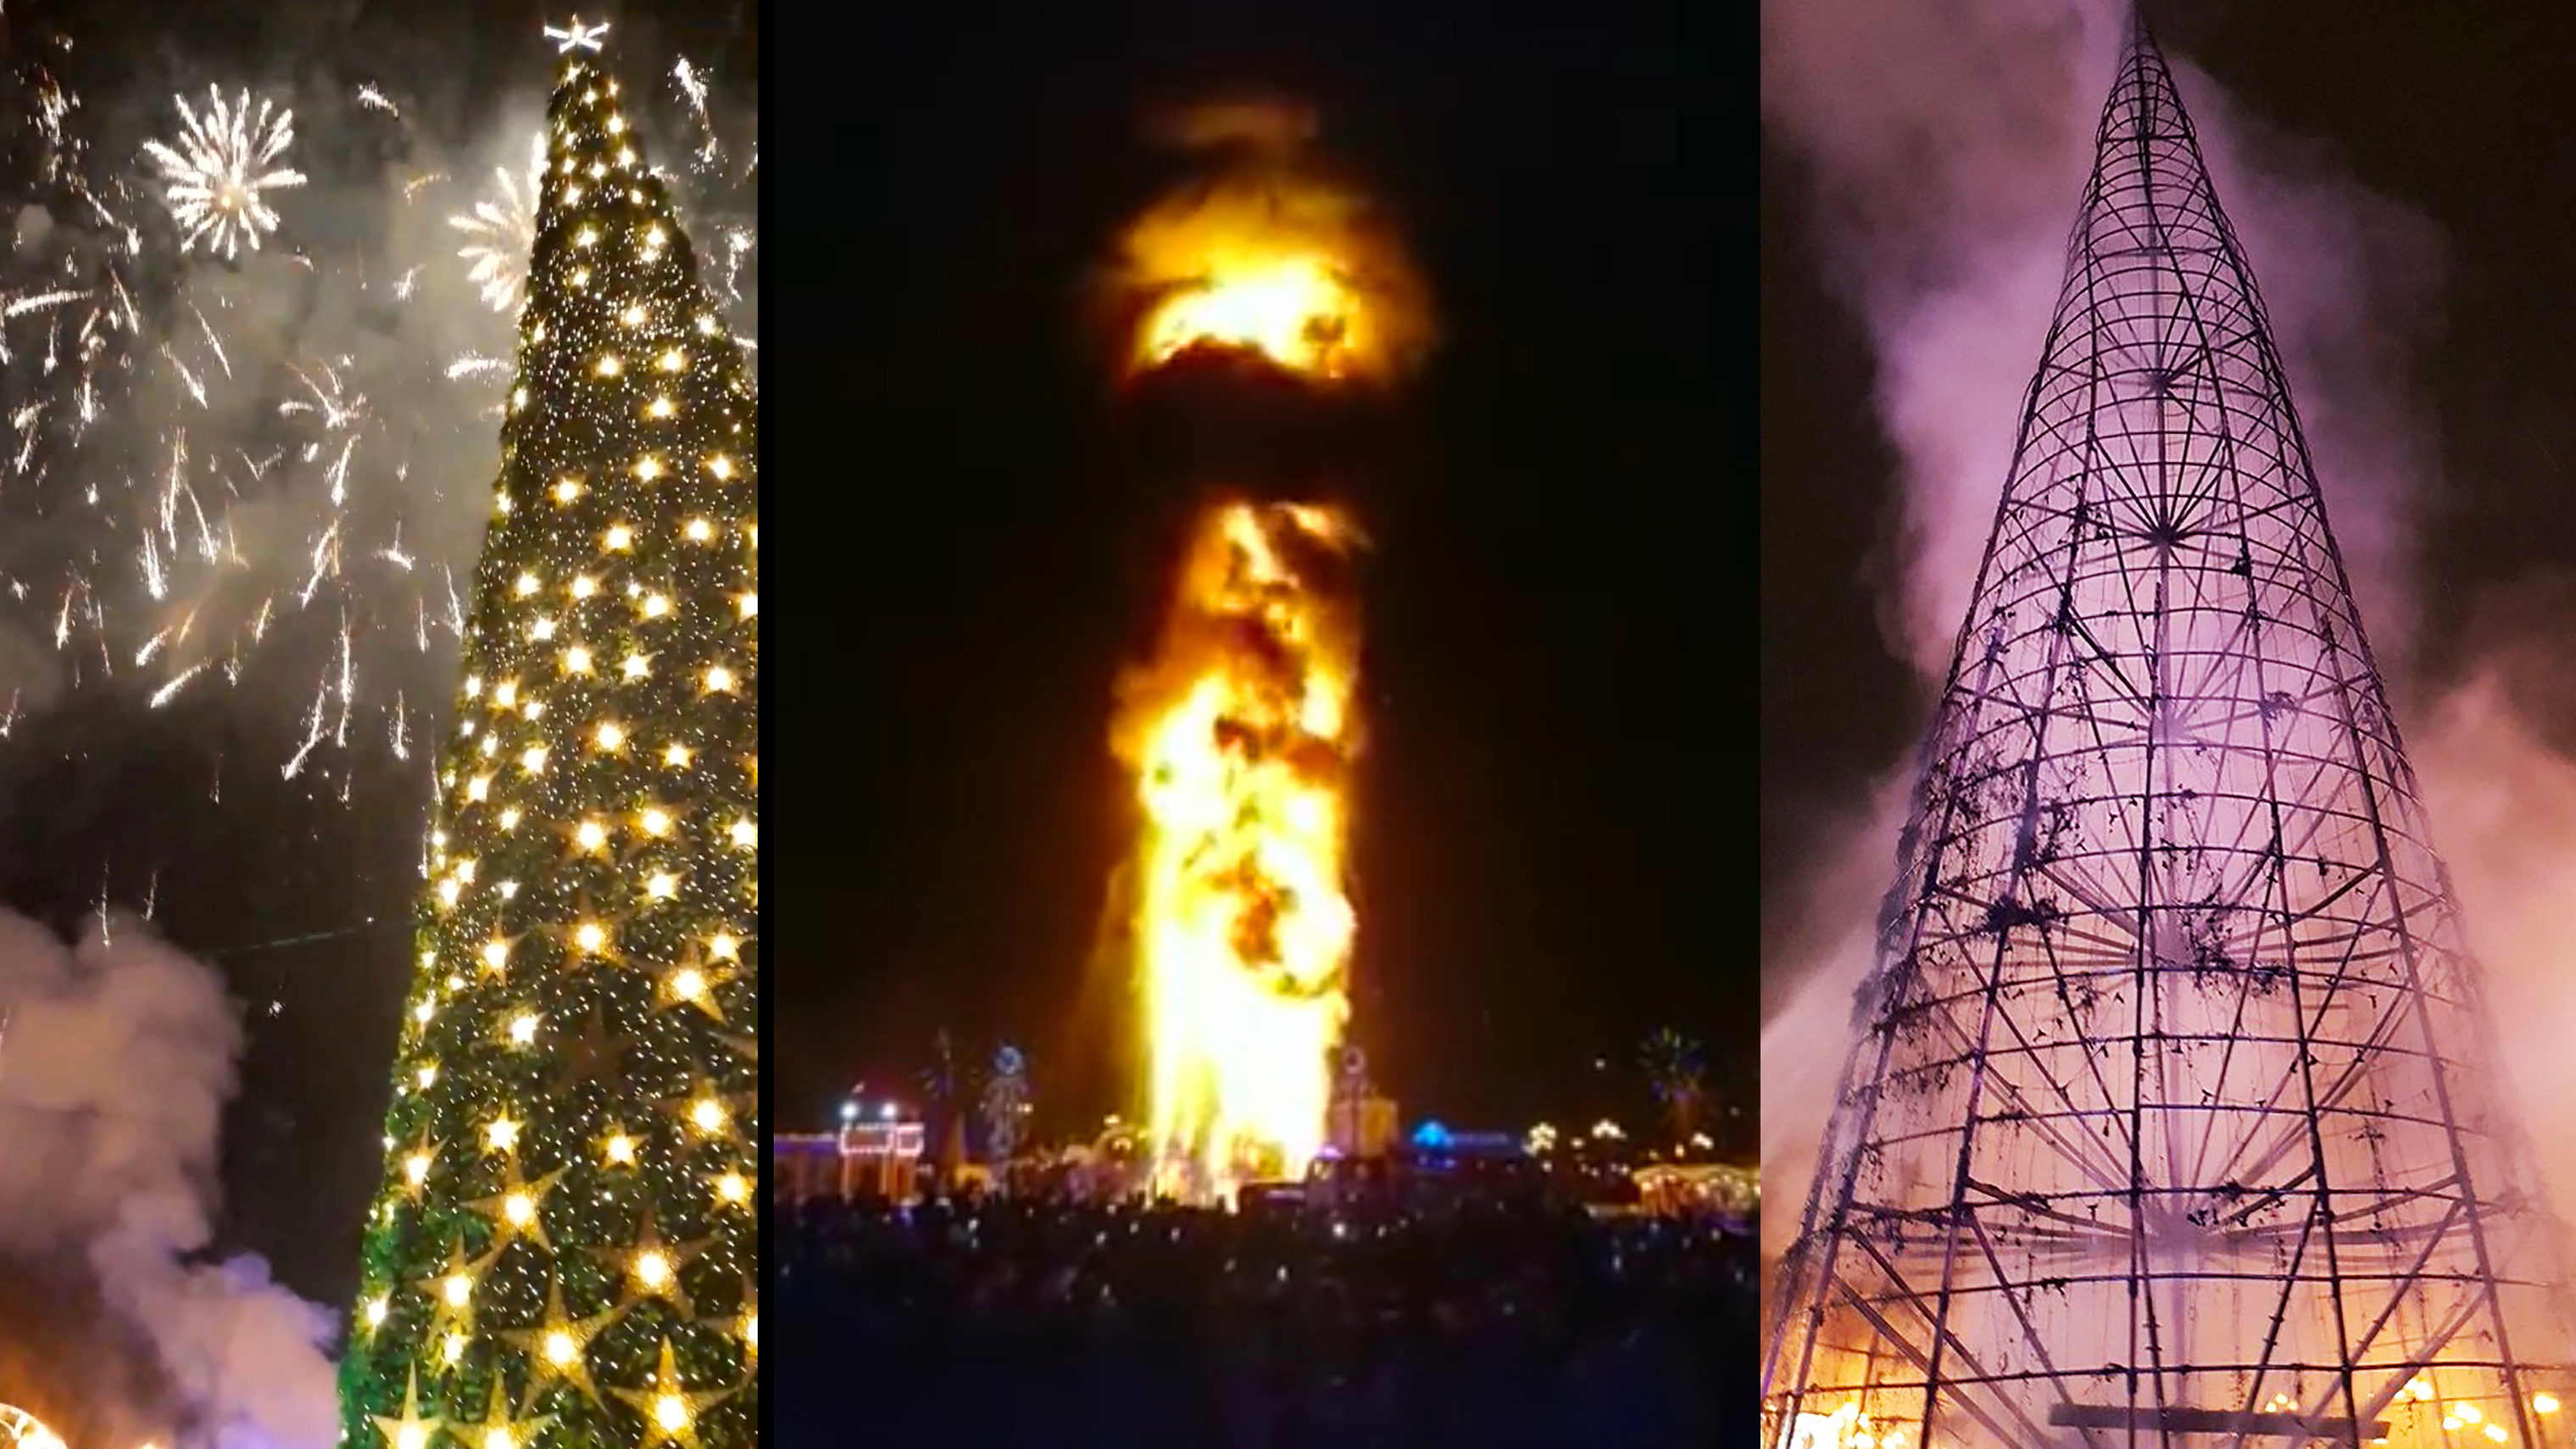 An 80ft Christmas Tree Burned Down In Minutes In Russia